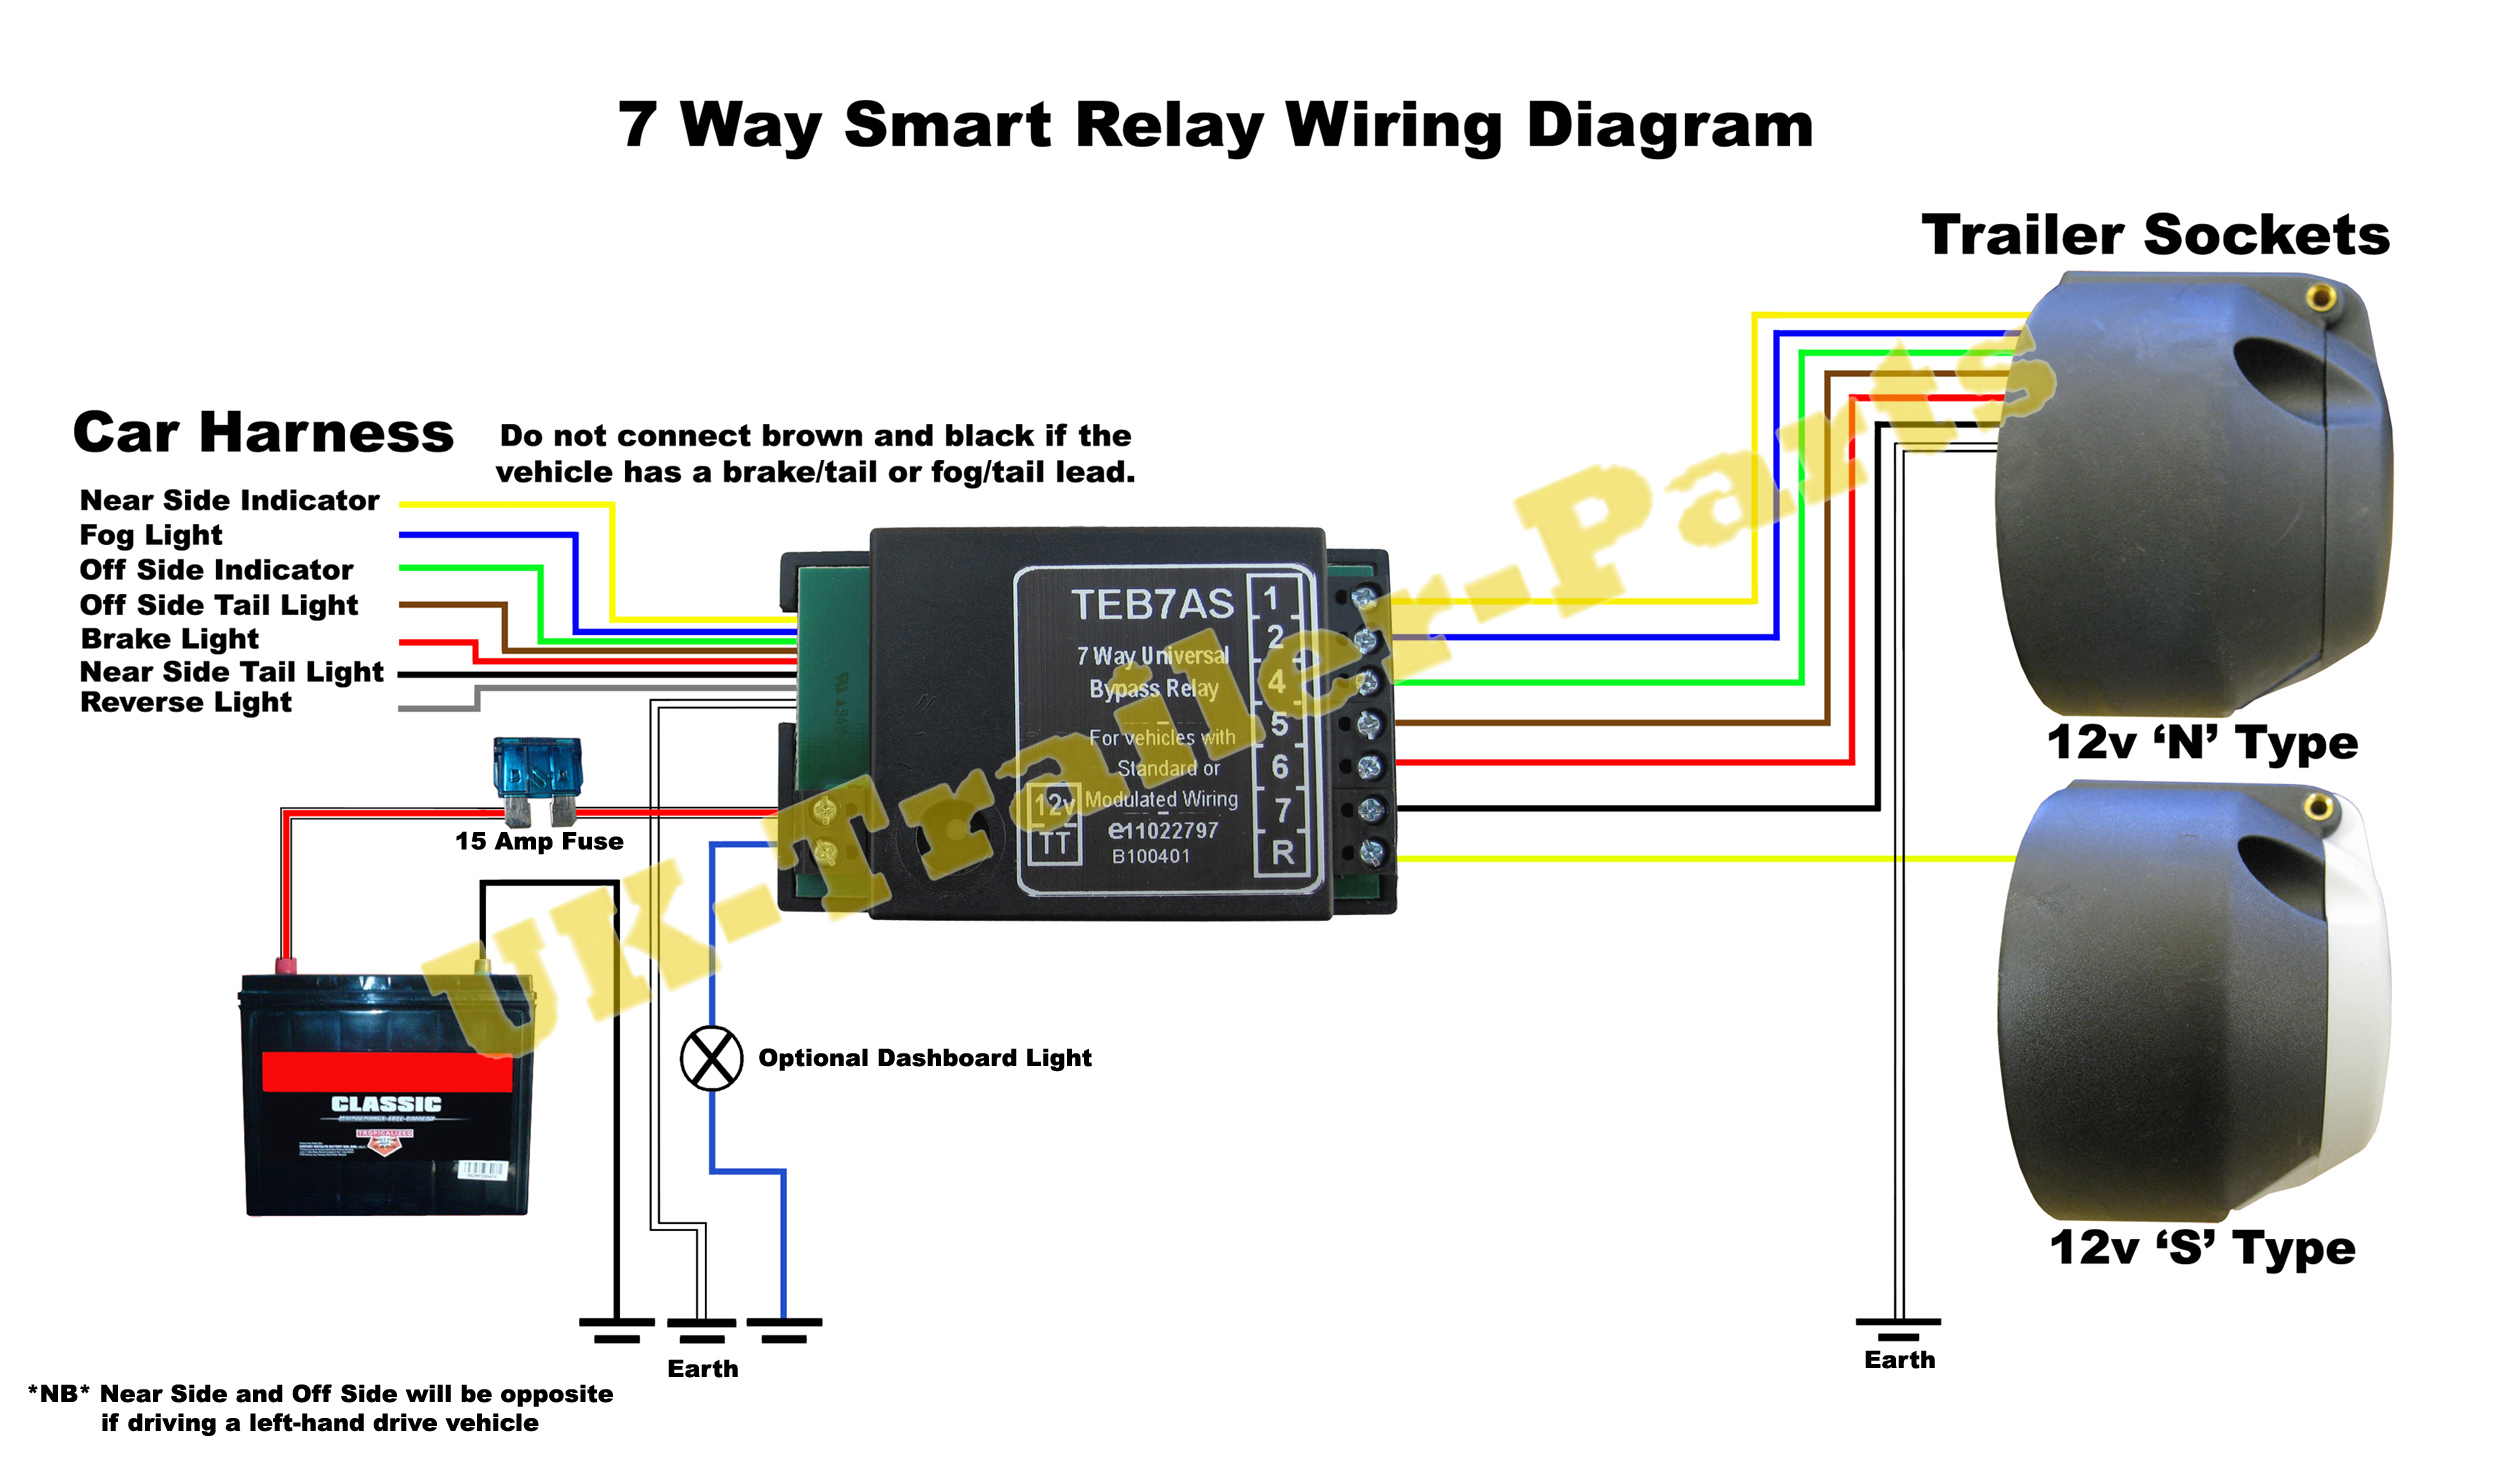 smart relay wiring diagram2 7 way universal bypass relay wiring diagram uk trailer parts fiat doblo towbar wiring diagram at fashall.co